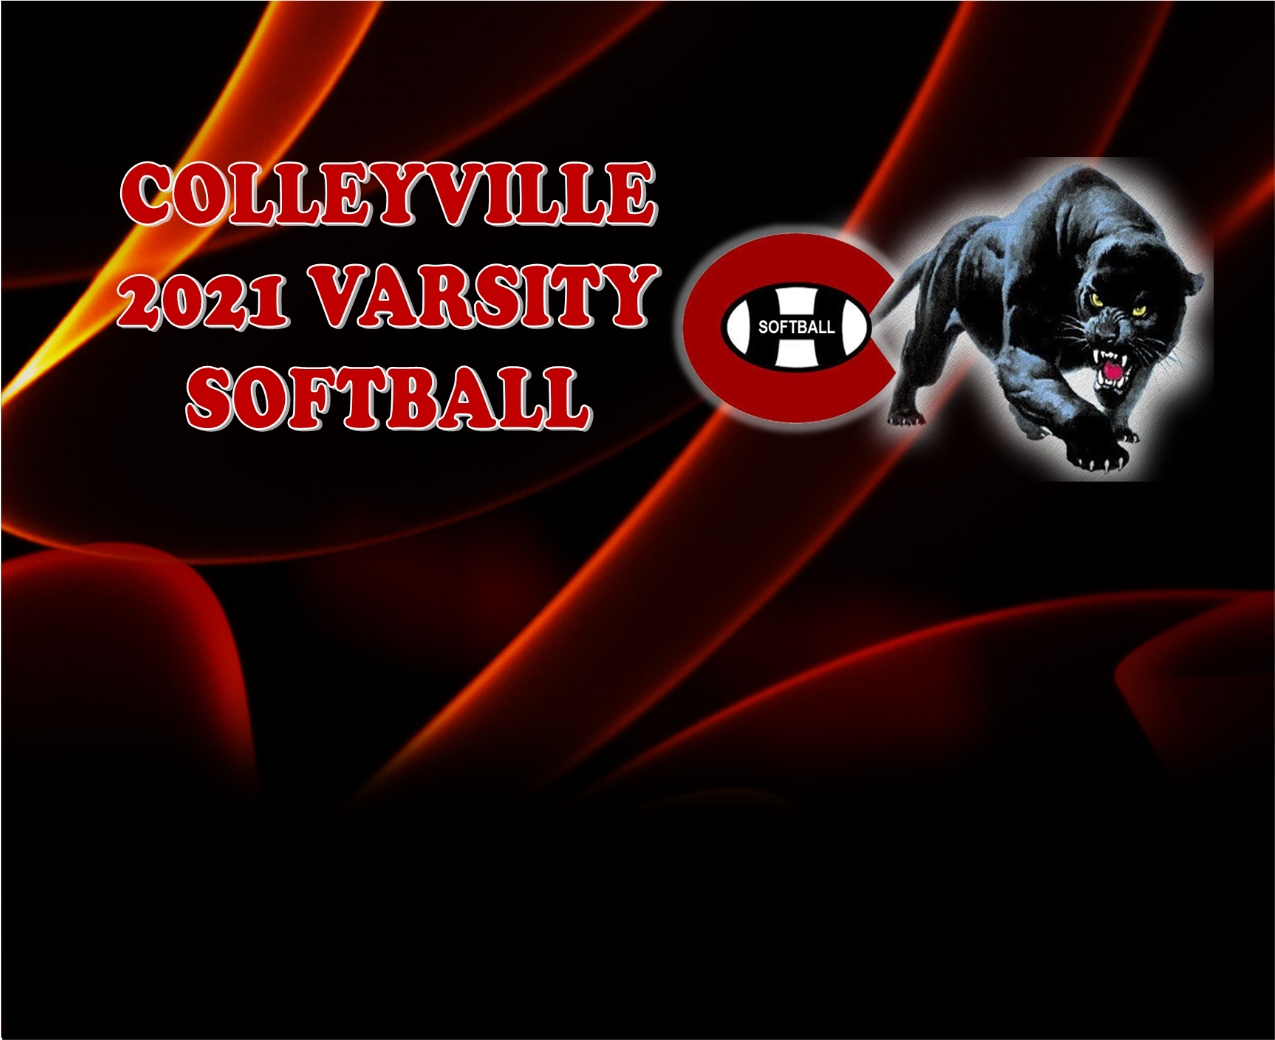 GCISD Softball: Colleyville Lady Panthers End Playoff Run with Loss to Aledo Ladycats 3-1